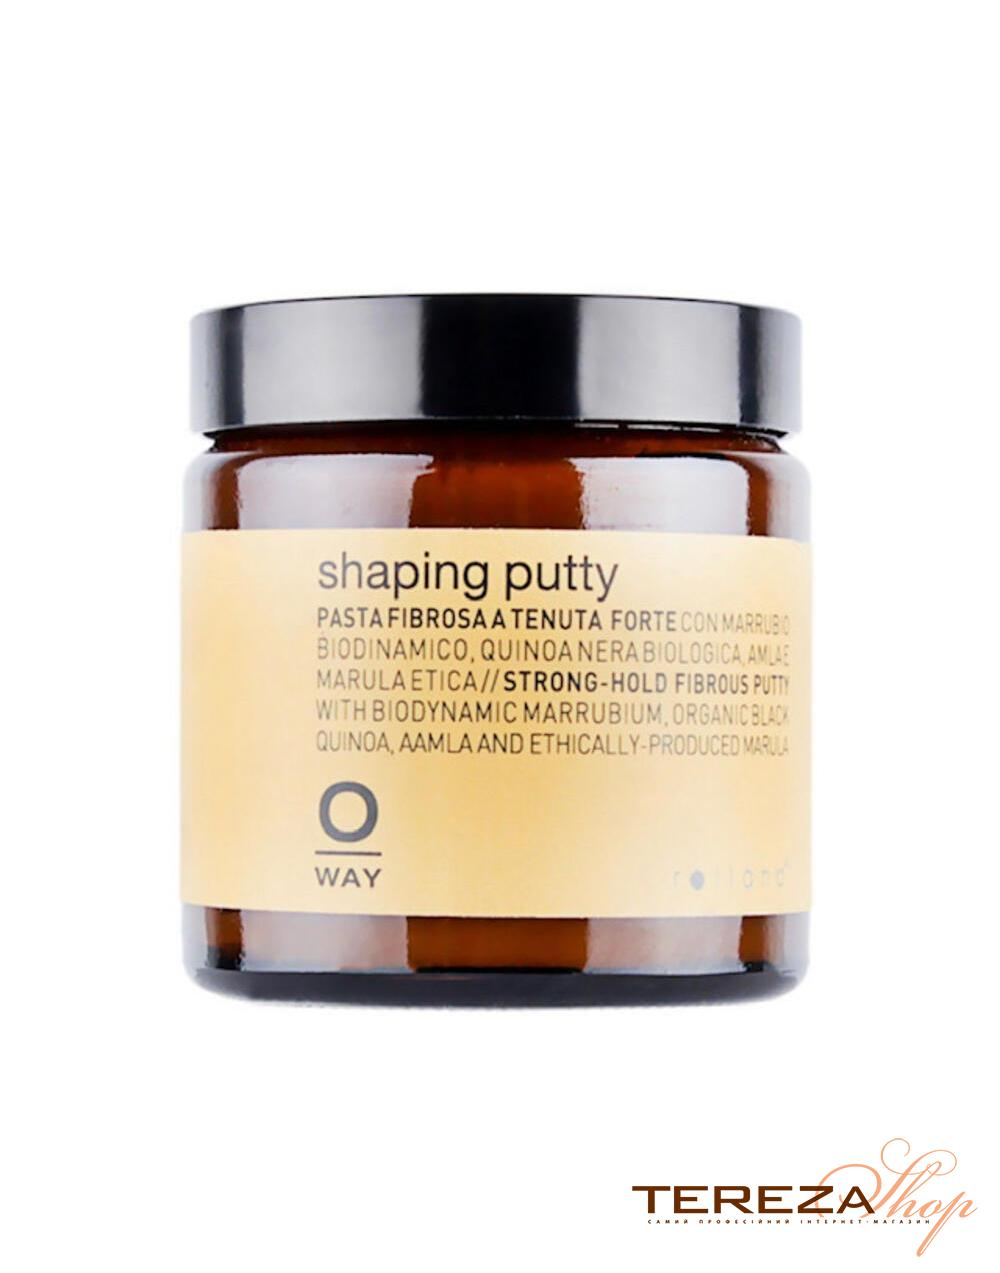 SHAPING PUTTY OWAY | Tereza Shop